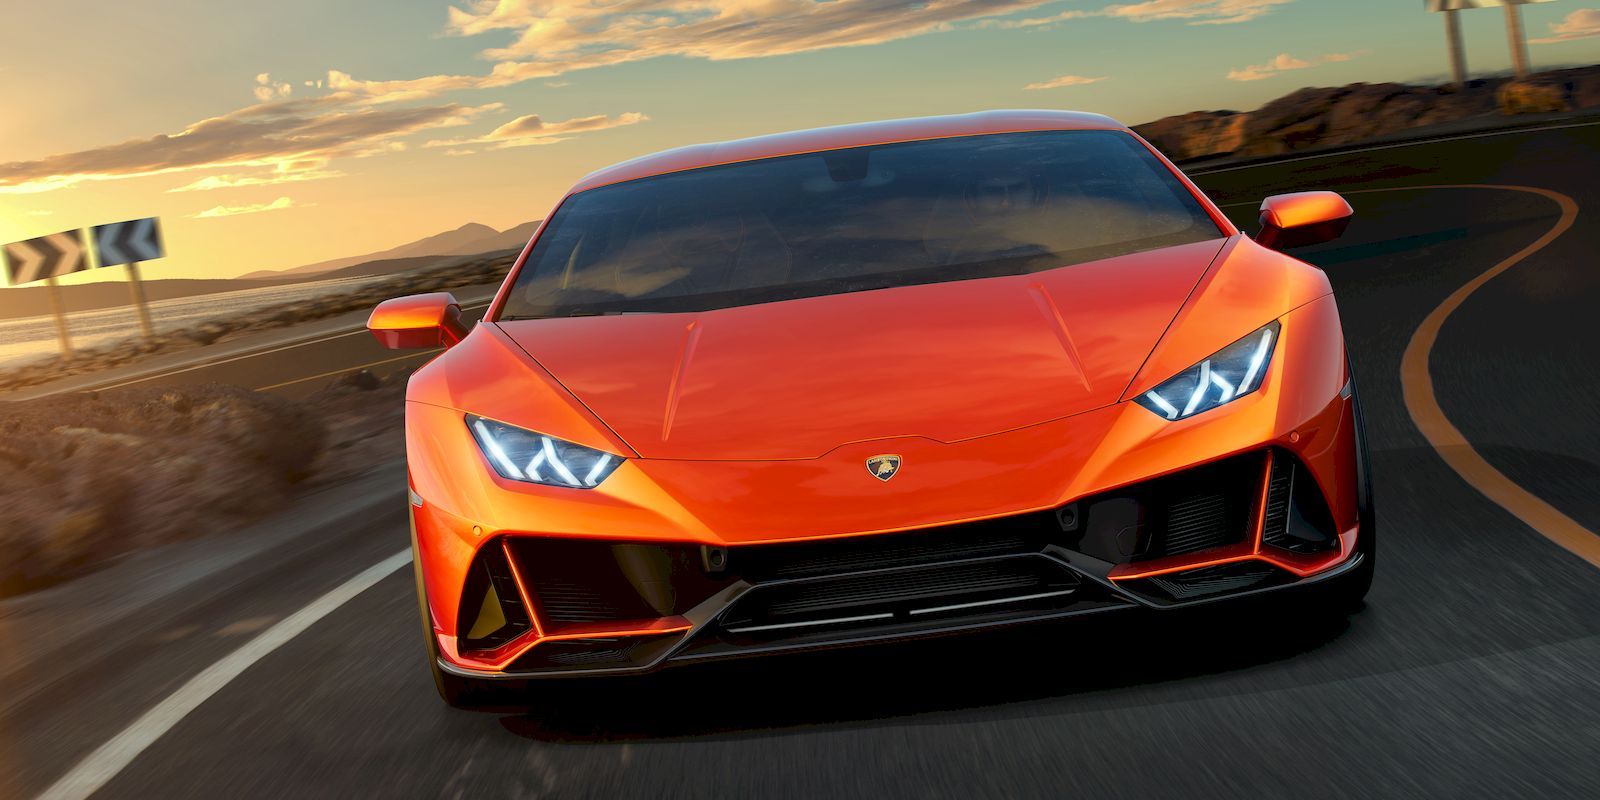 The New Lamborghini Huracan Evo Is Forcing Rivals To Up Their Game